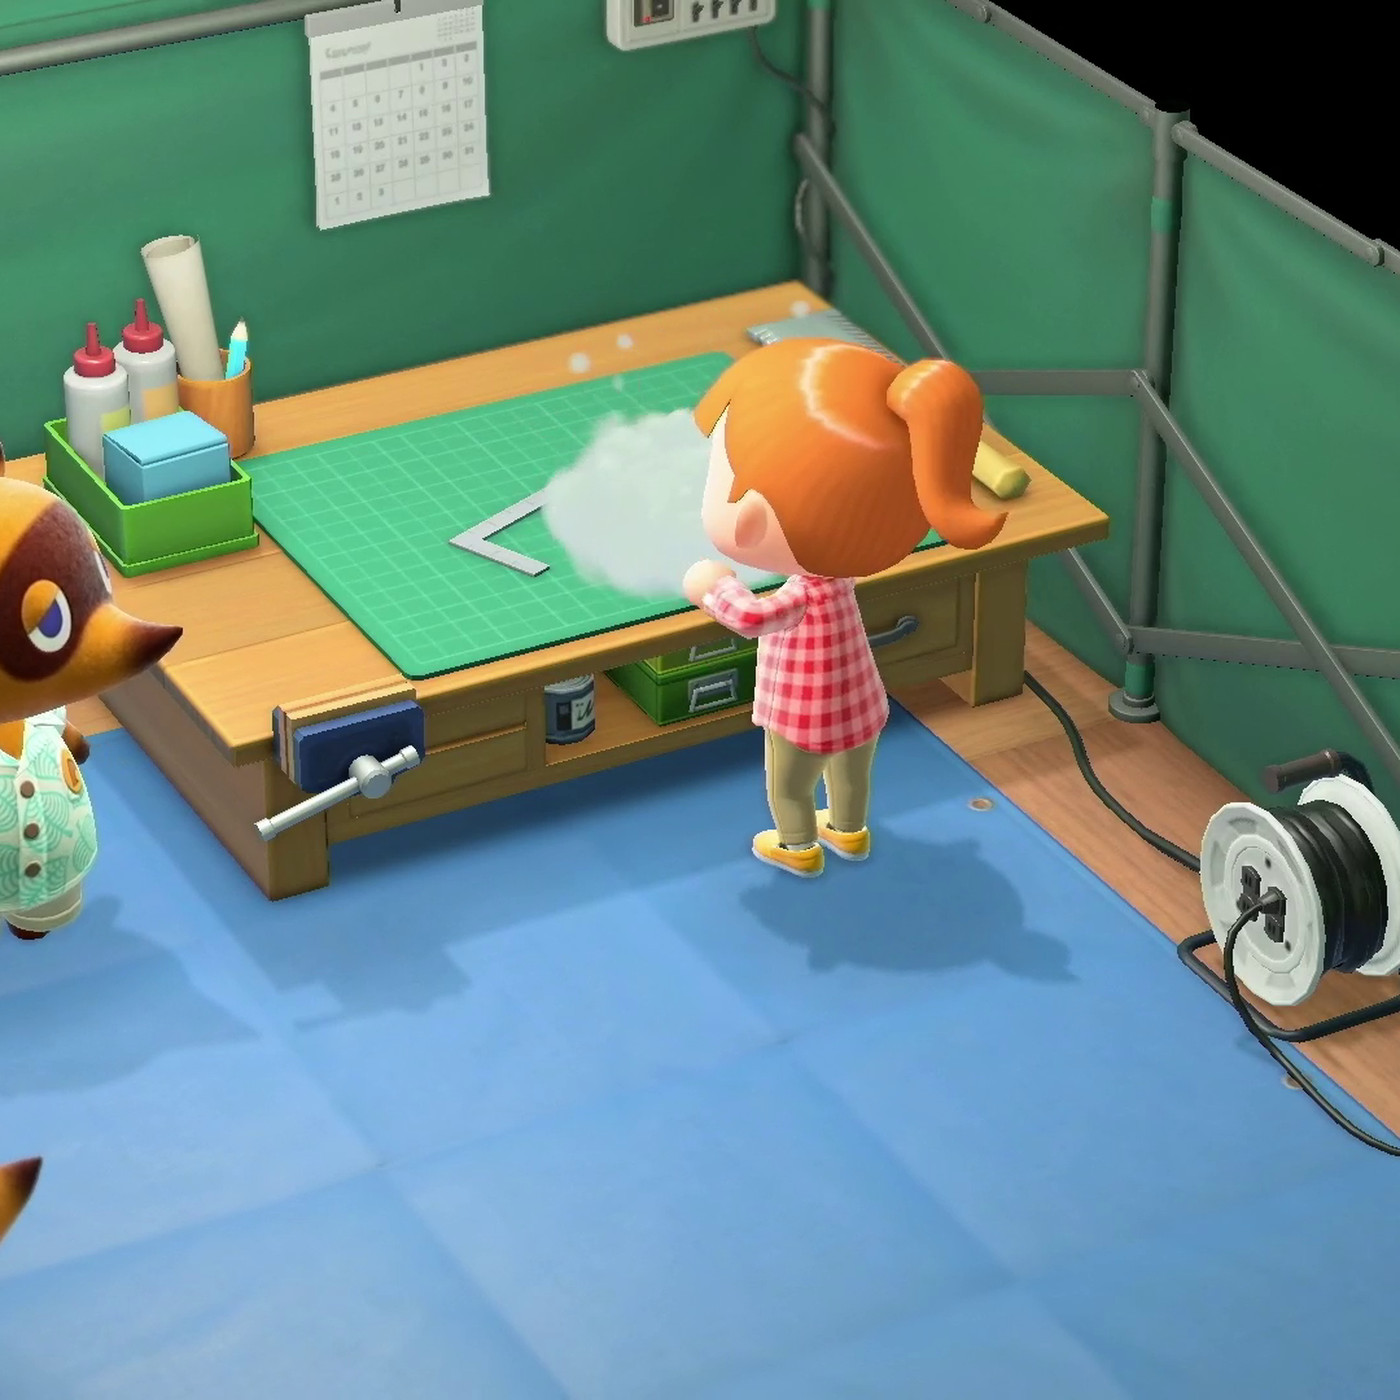 Animal Crossing New Horizons Breakable Tools Are Tedious Polygon